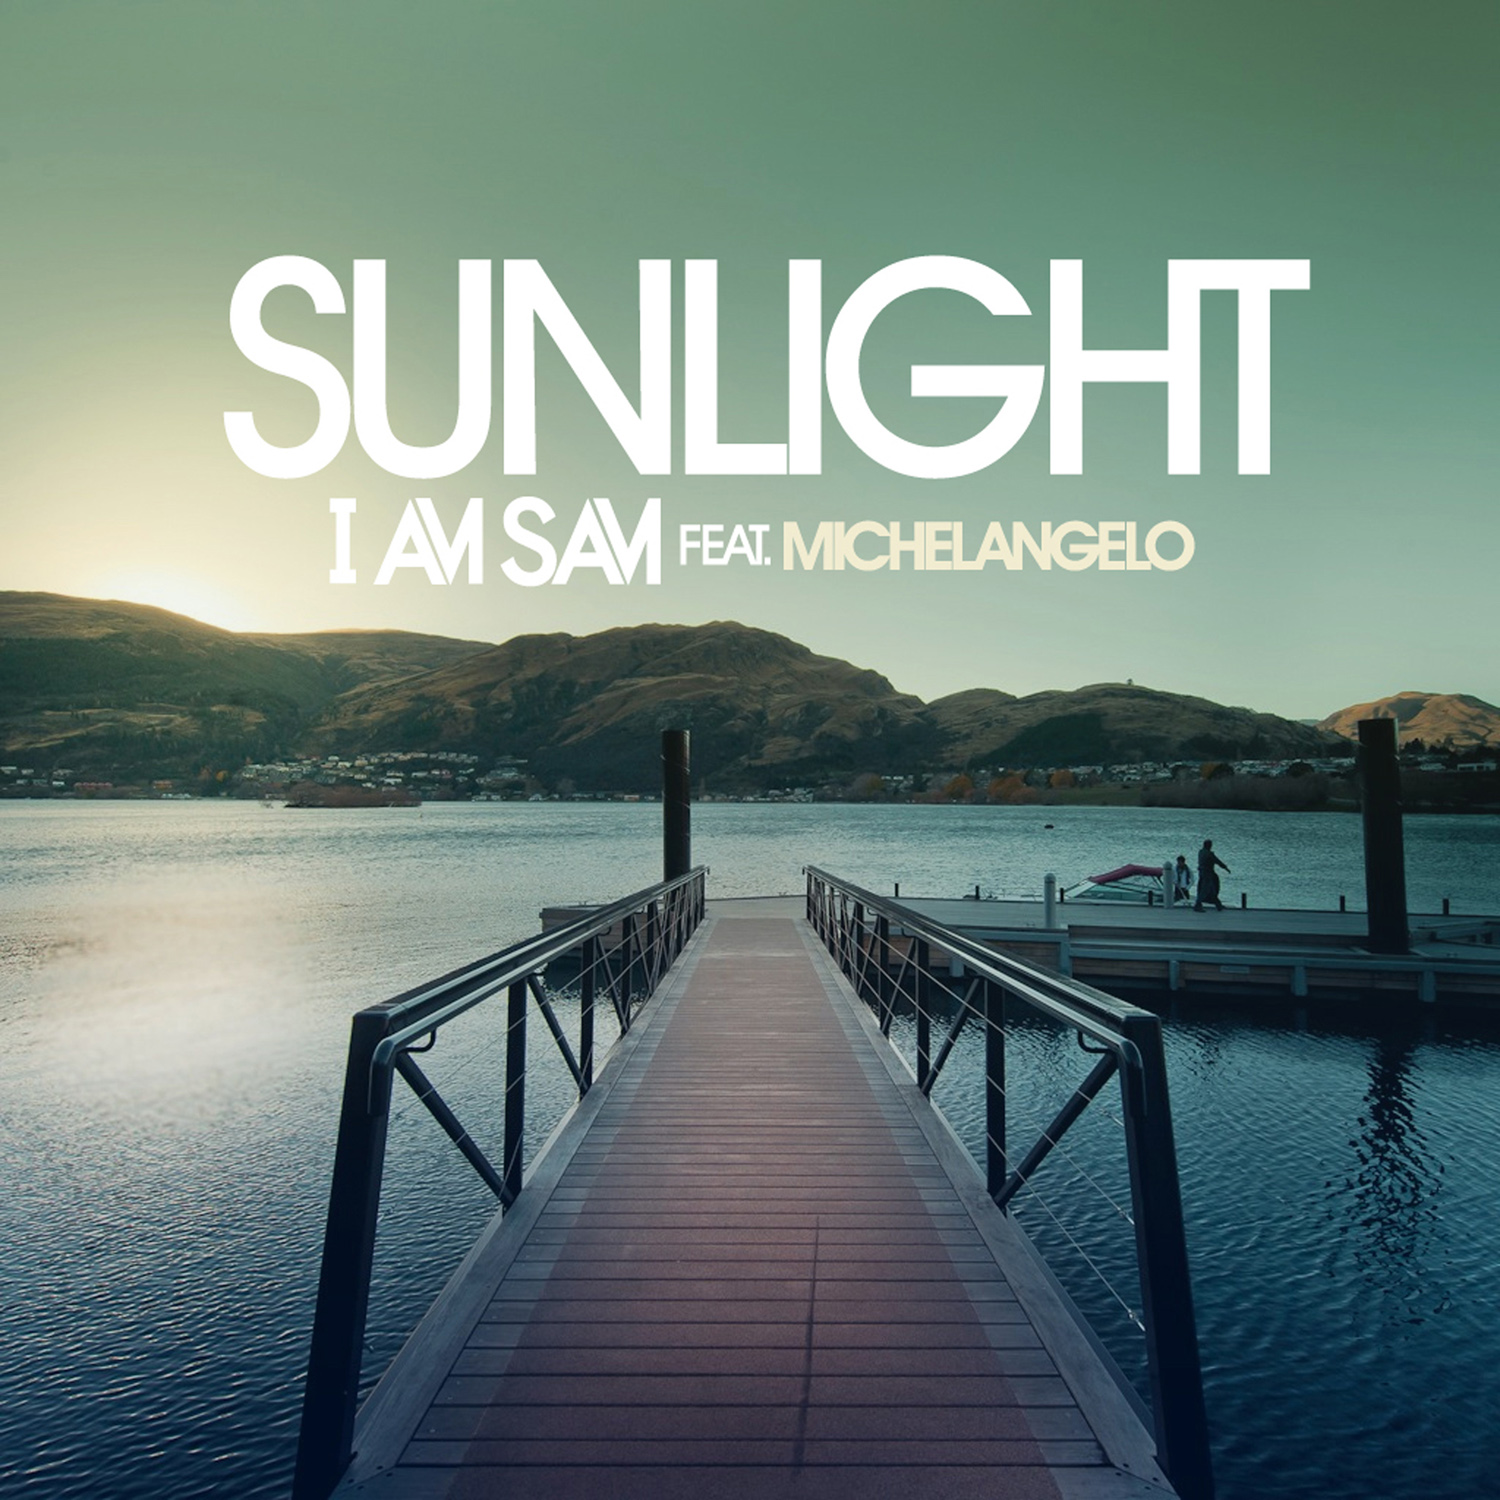 I Am Sam – Sunlight (feat. Michelangelo)